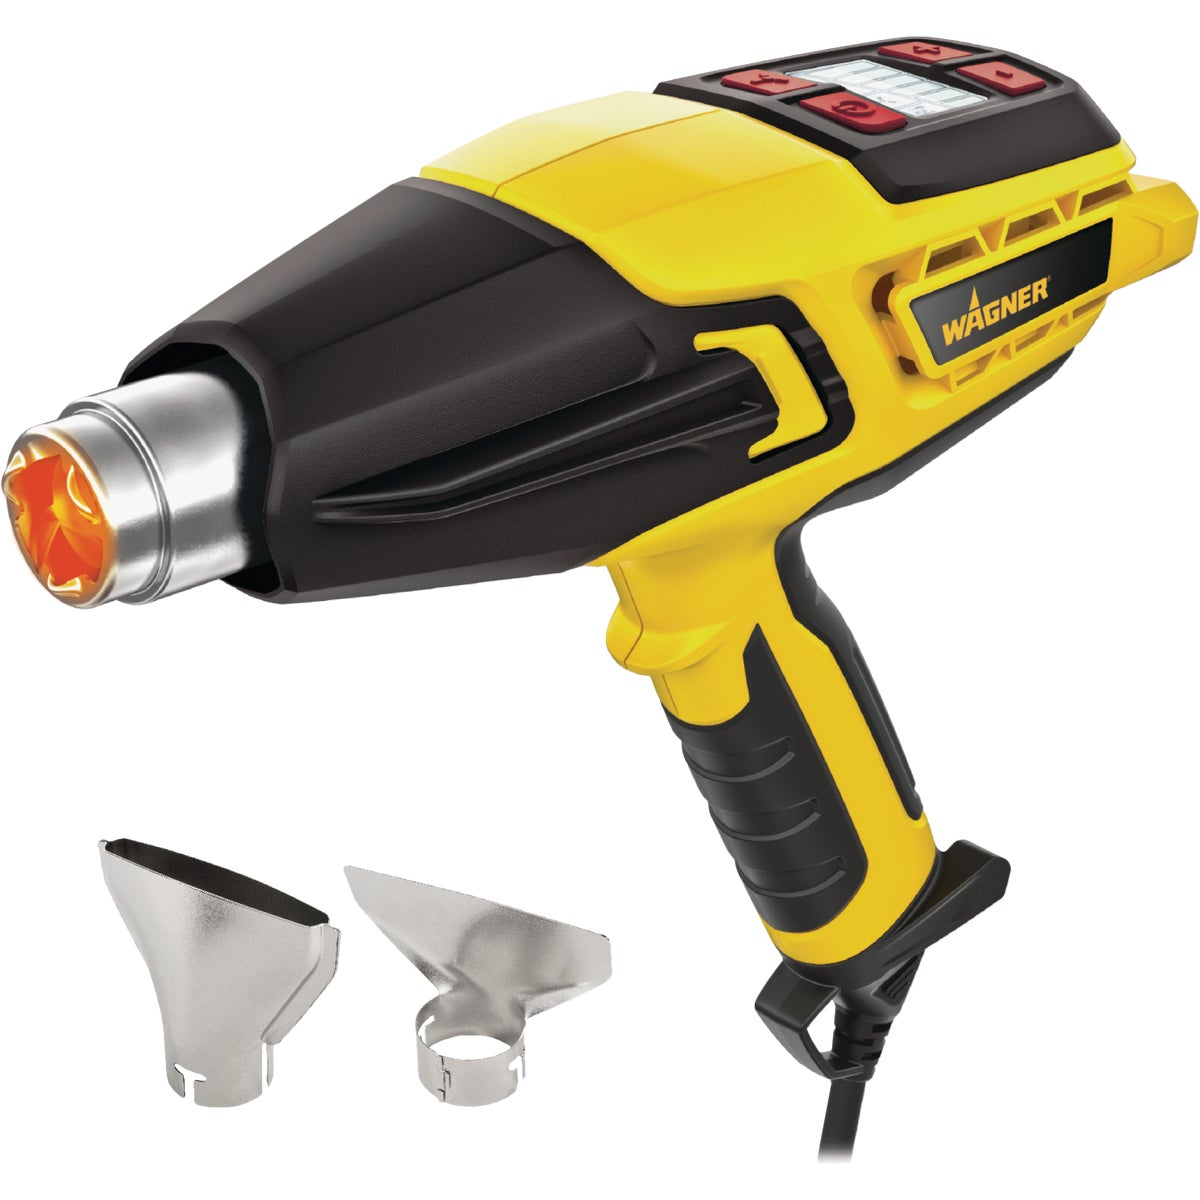 DIGITAL VARIABL HEAT GUN